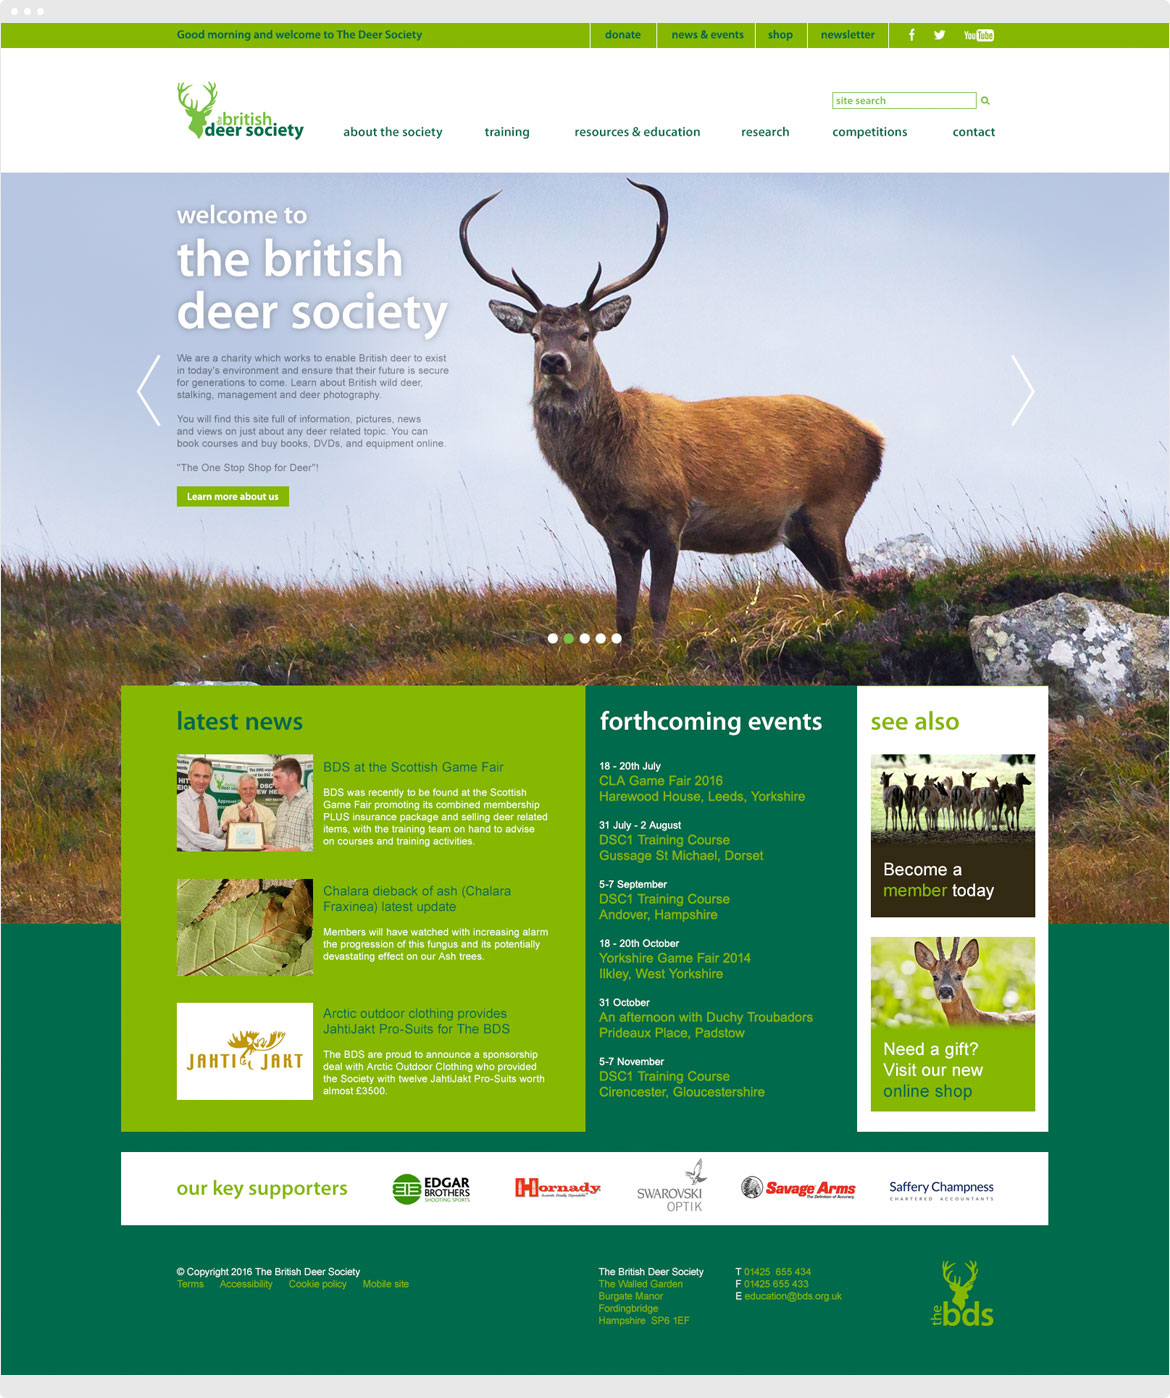 picture_BritishDeerSociety_Homepage